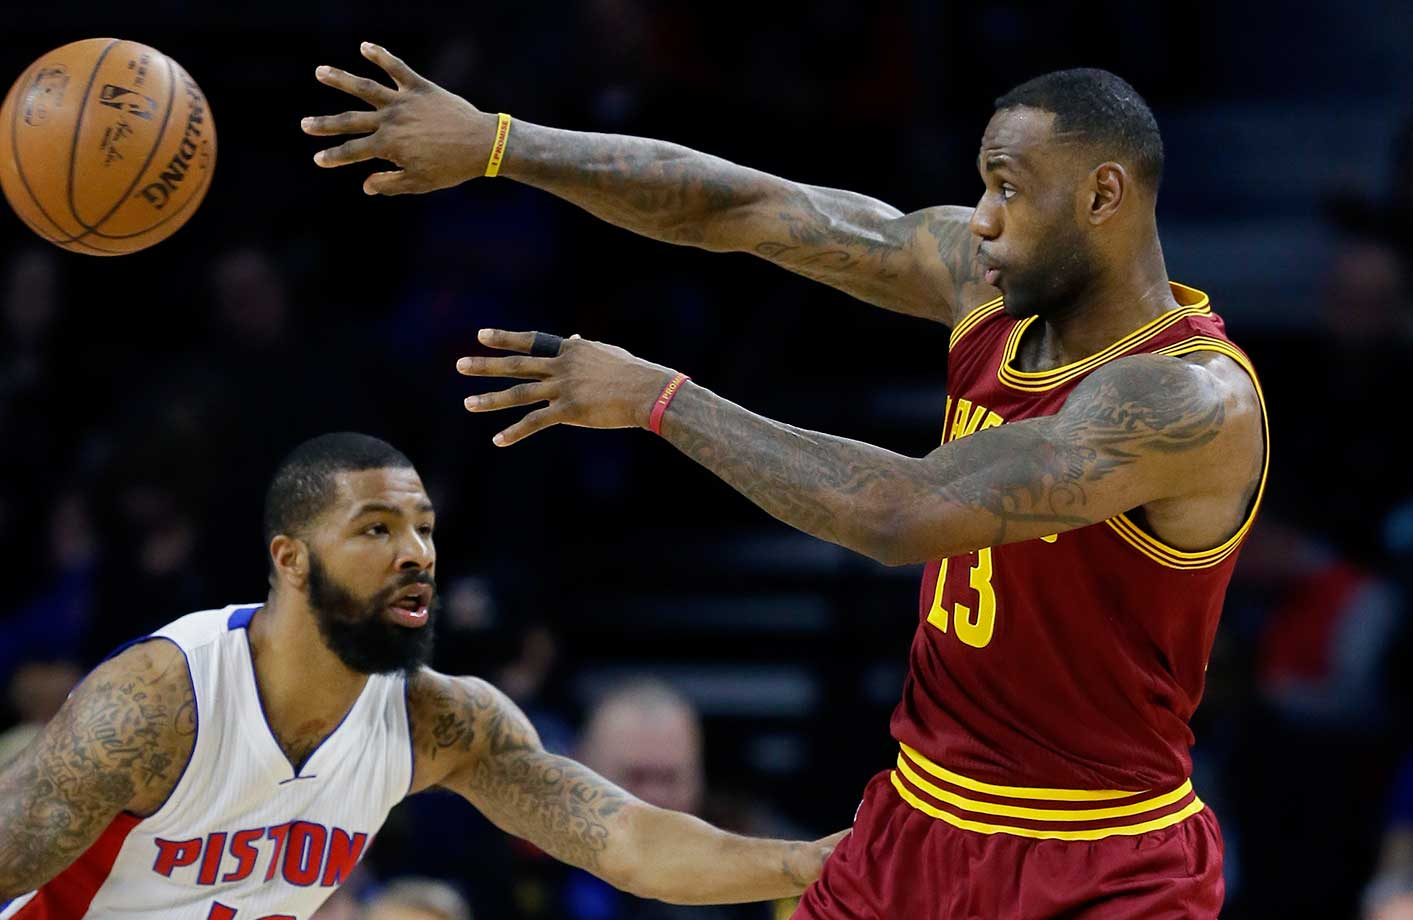 LeBron James passes in front of Detroit Pistons forward Marcus Morris in Auburn Hills, Mich.